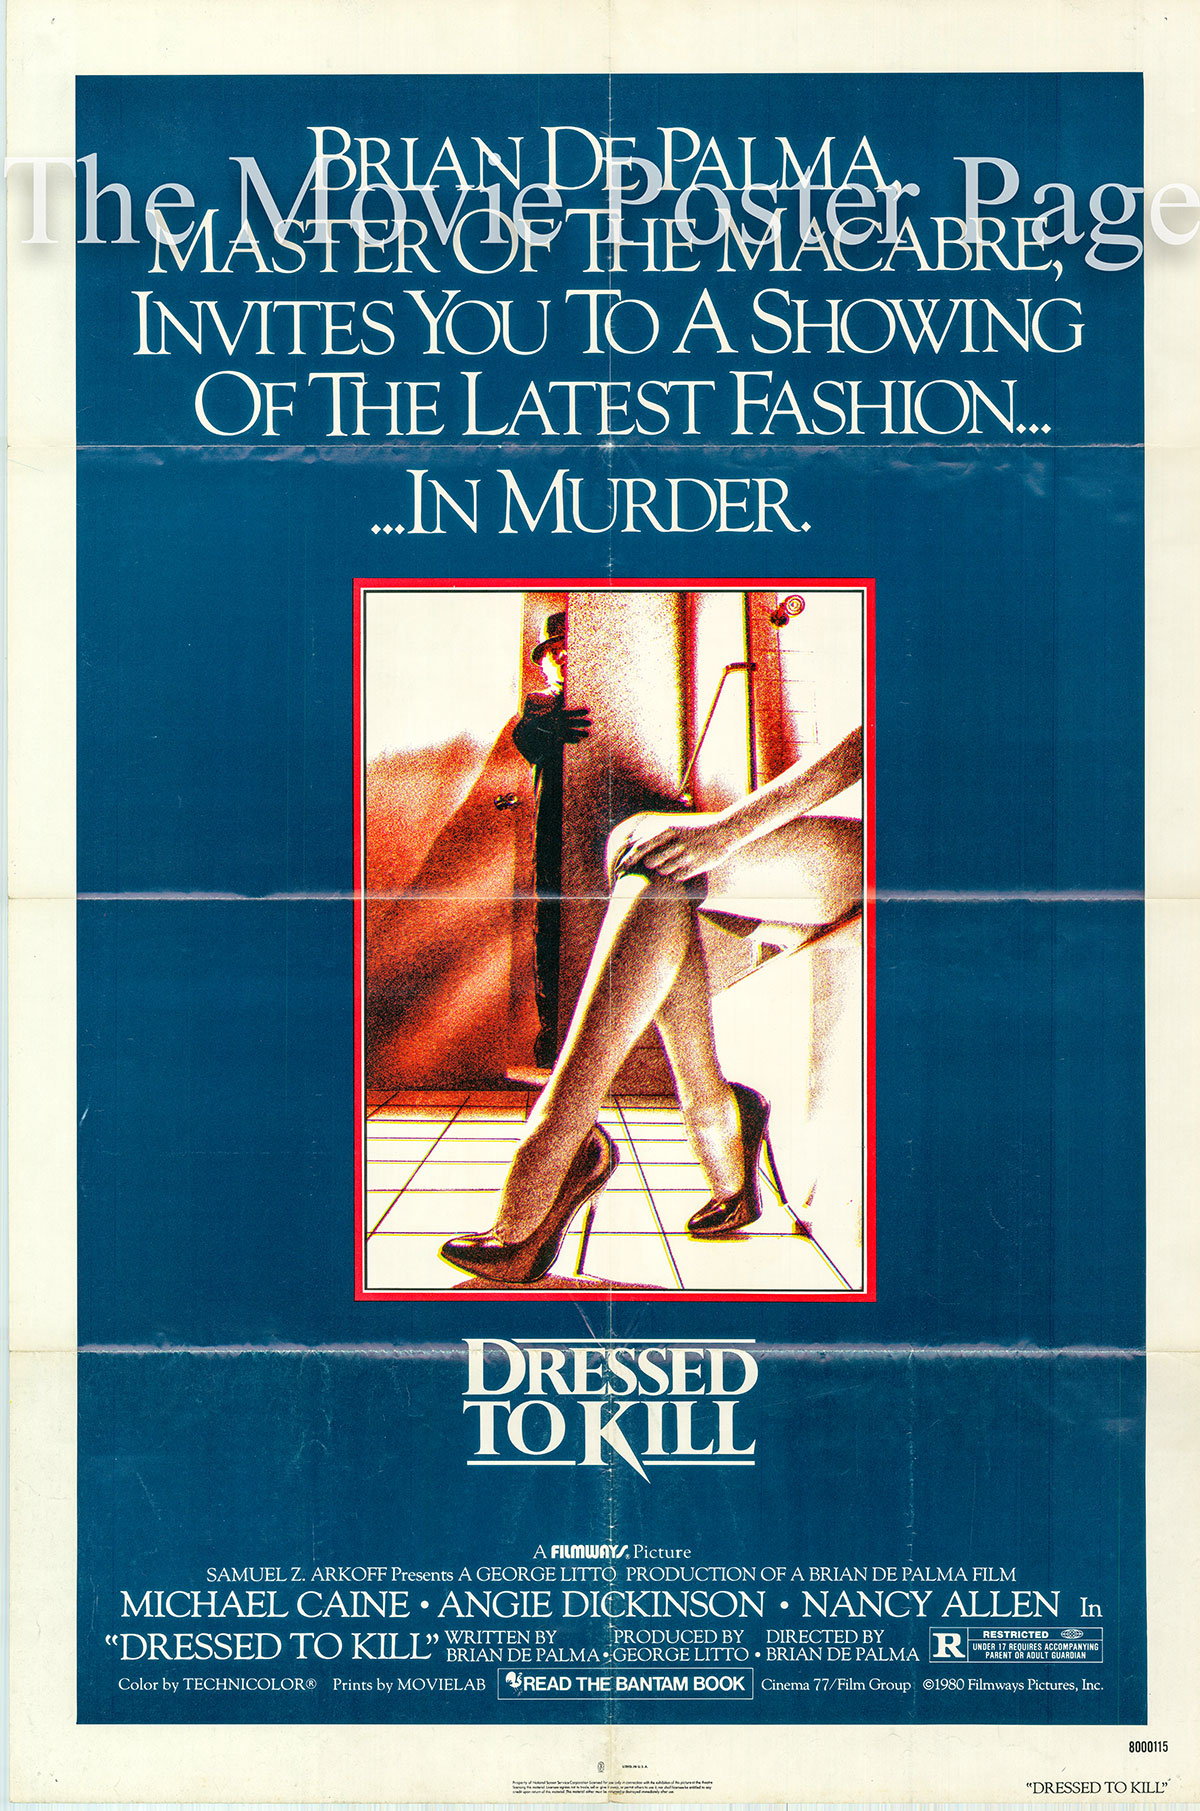 Pictured is a US one-sheet promotional poster for the 1980 Brian de Palma film Dressed to Kill starring Michael Caine.